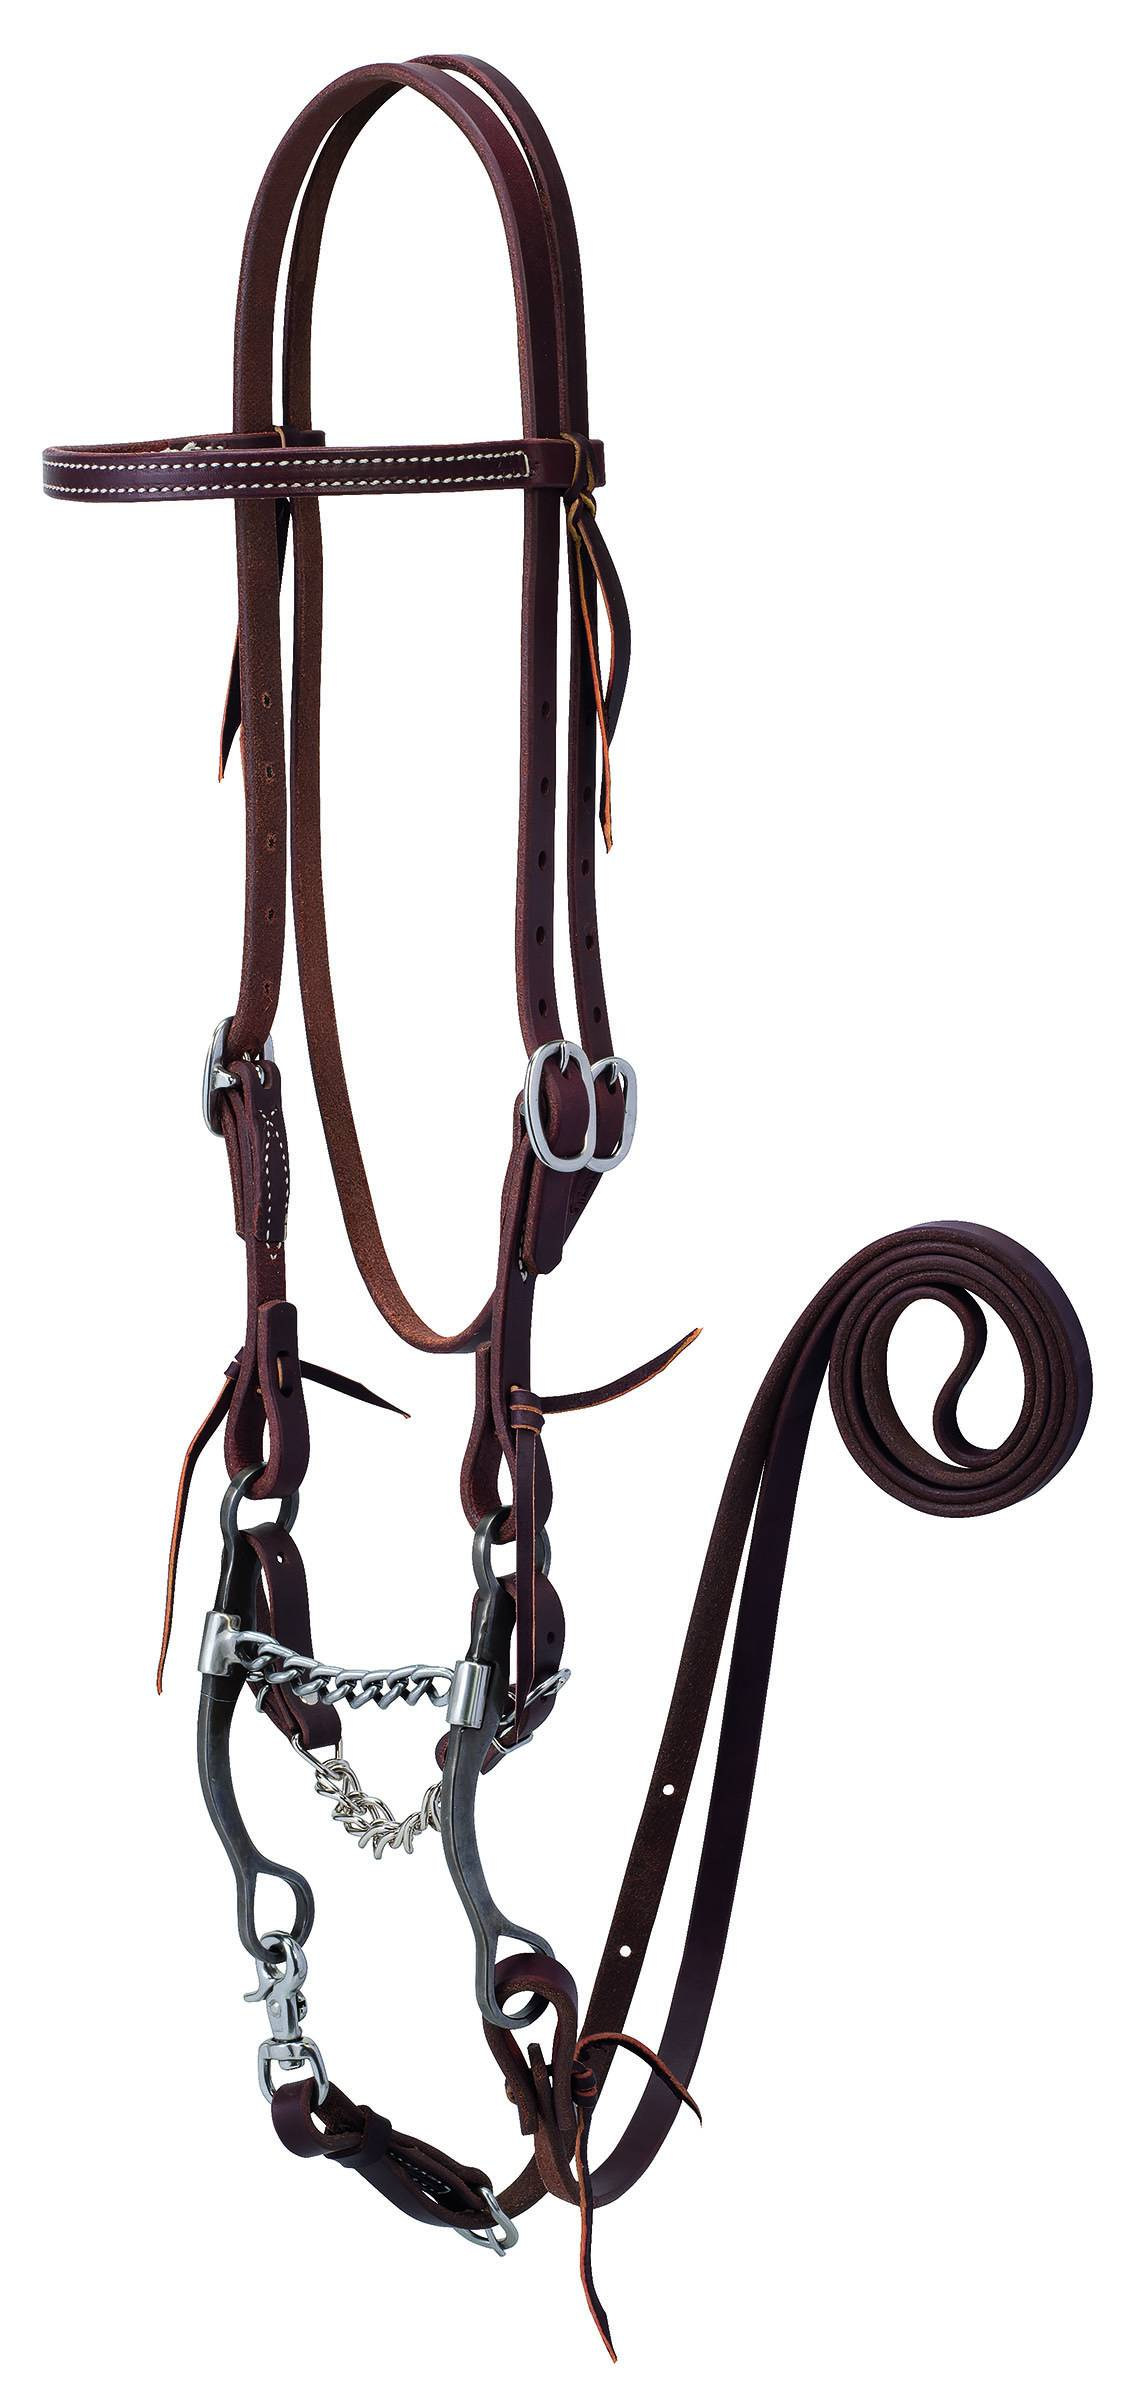 Weaver Working Tack Bridle With Chain Mouth Bit